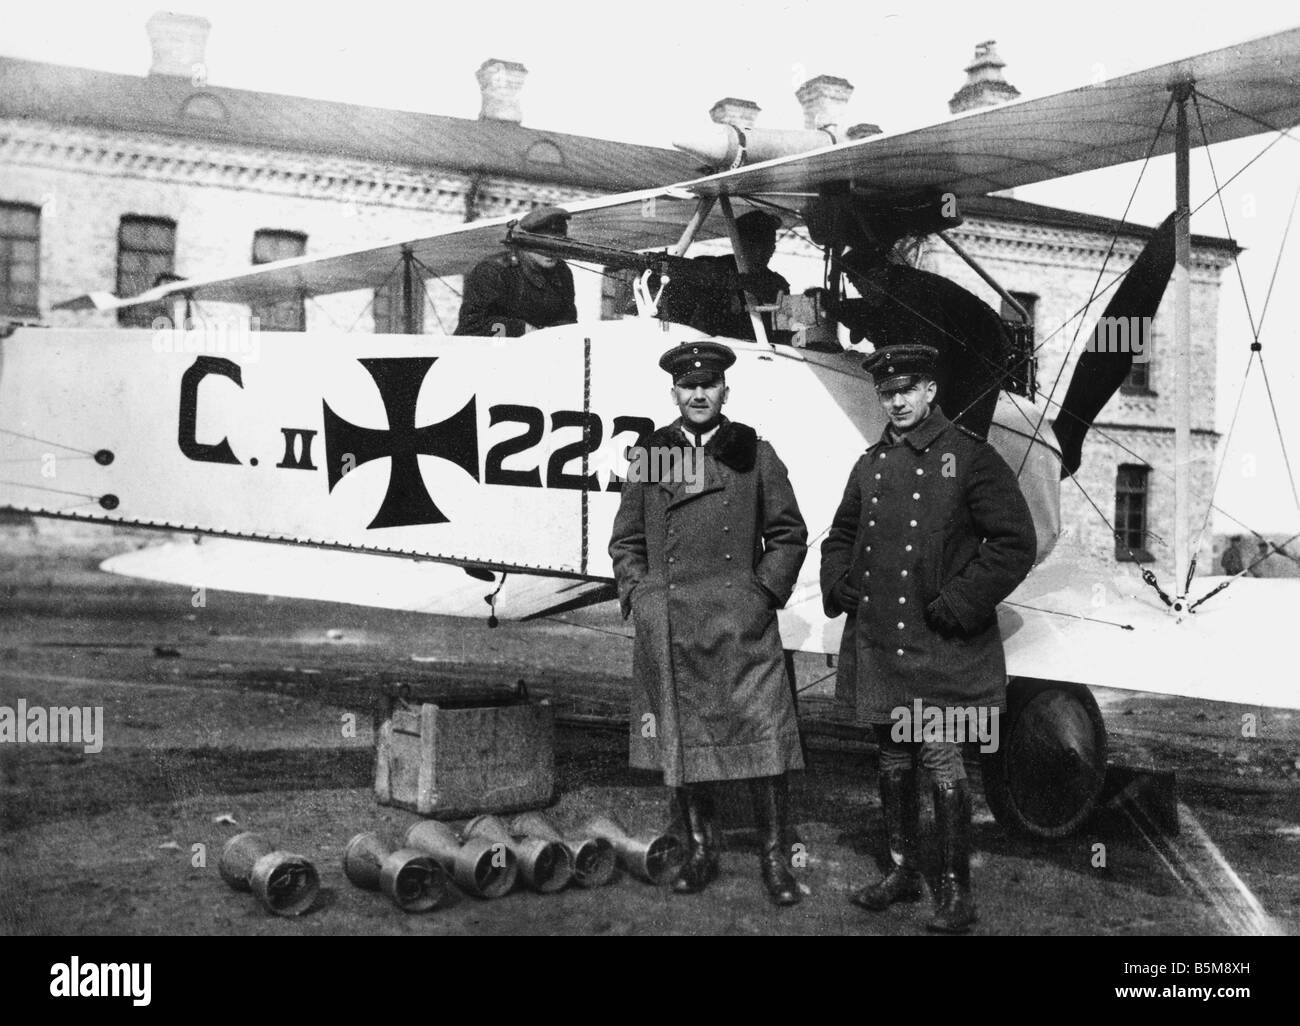 2 G55 L2 1916 E German battle plane Airforce officers History WWI Aerial Warfare German battle plane with machine - Stock Image